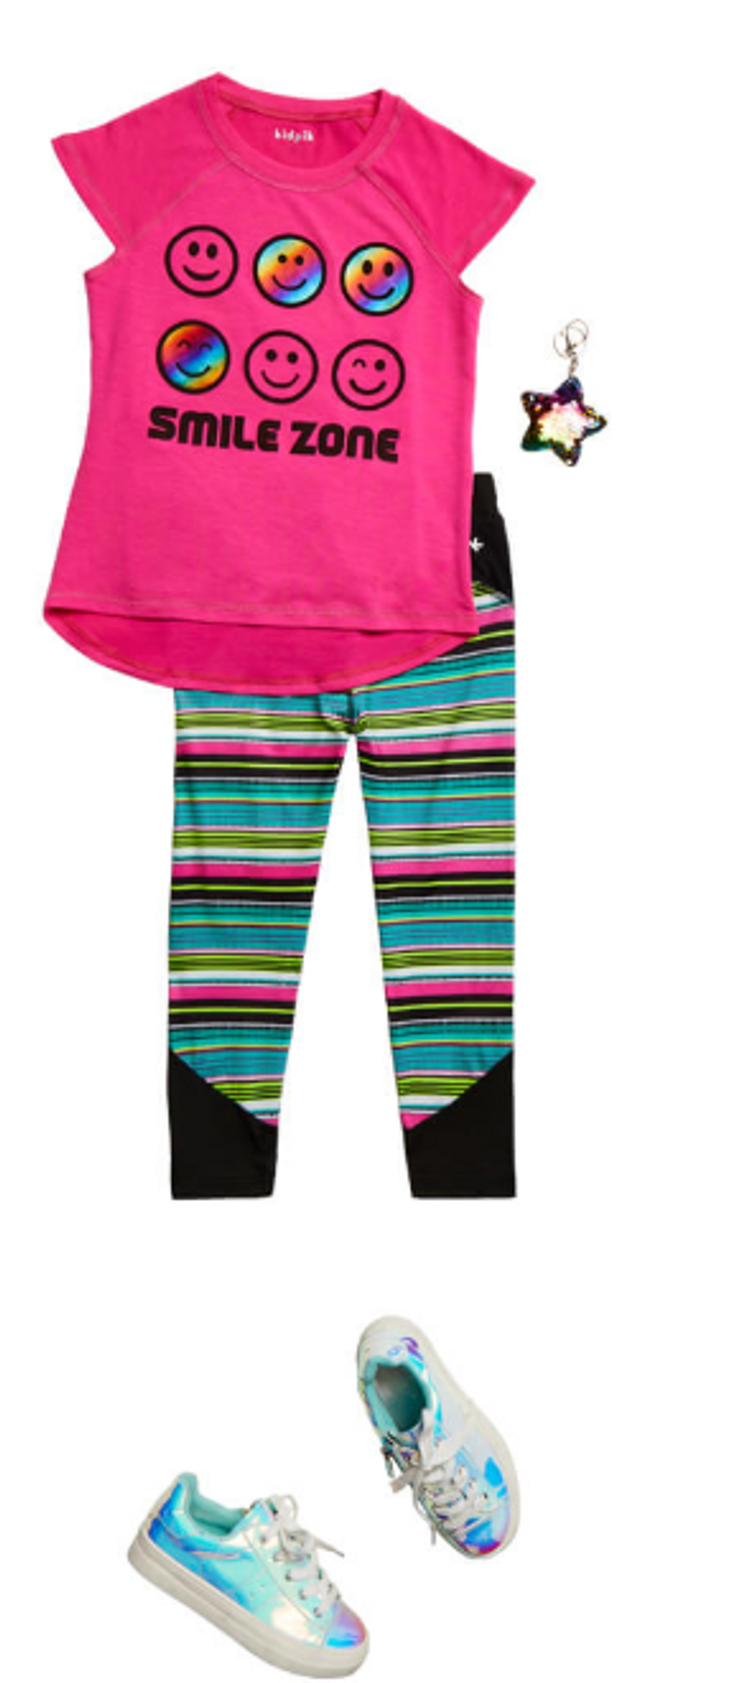 outdoor active style outfit